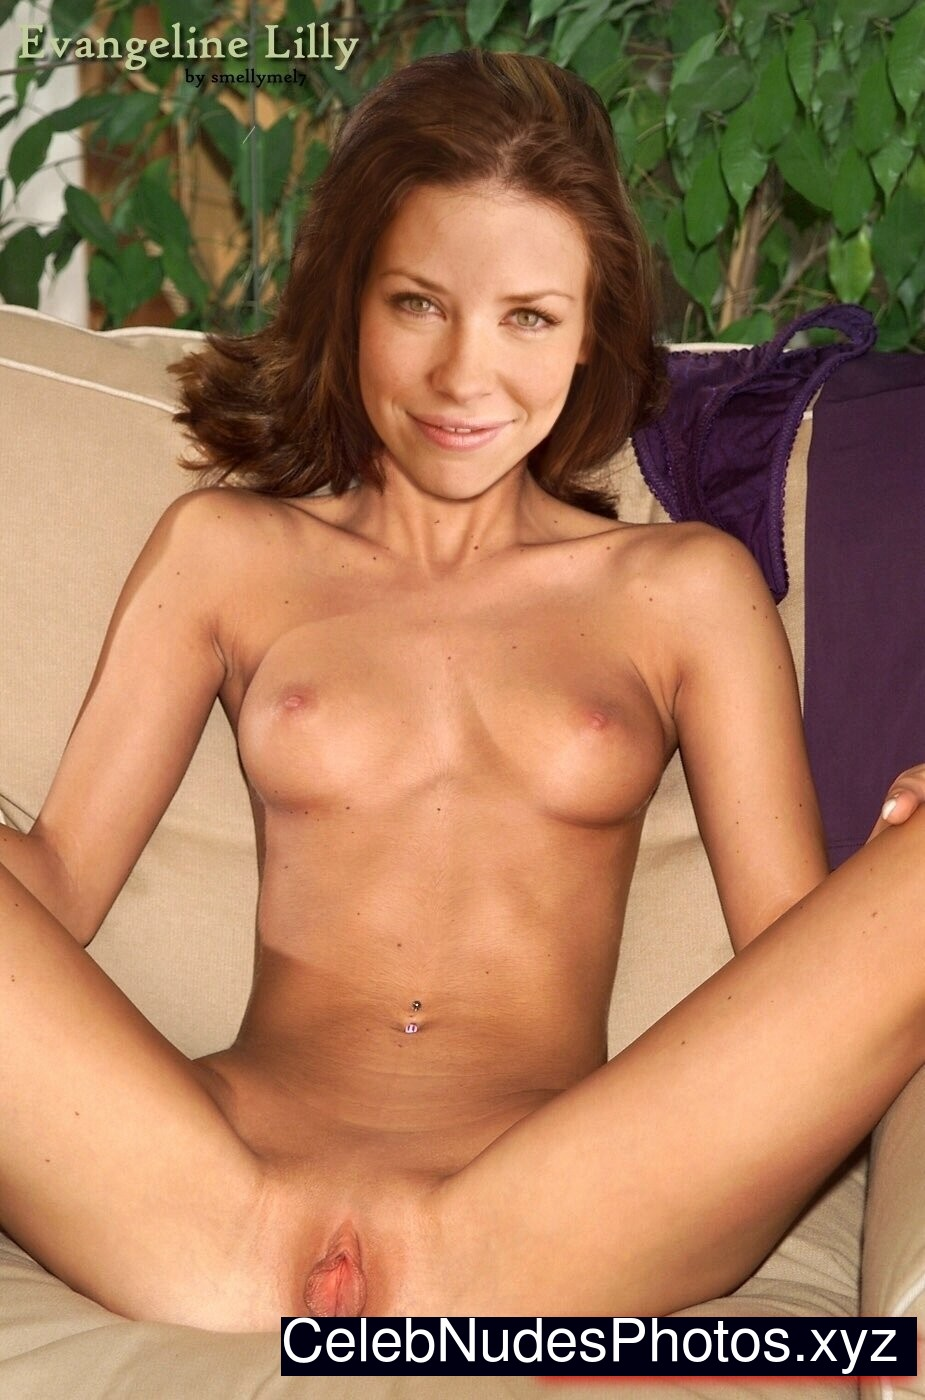 Evangeline Lilly Celebs Naked sexy 22